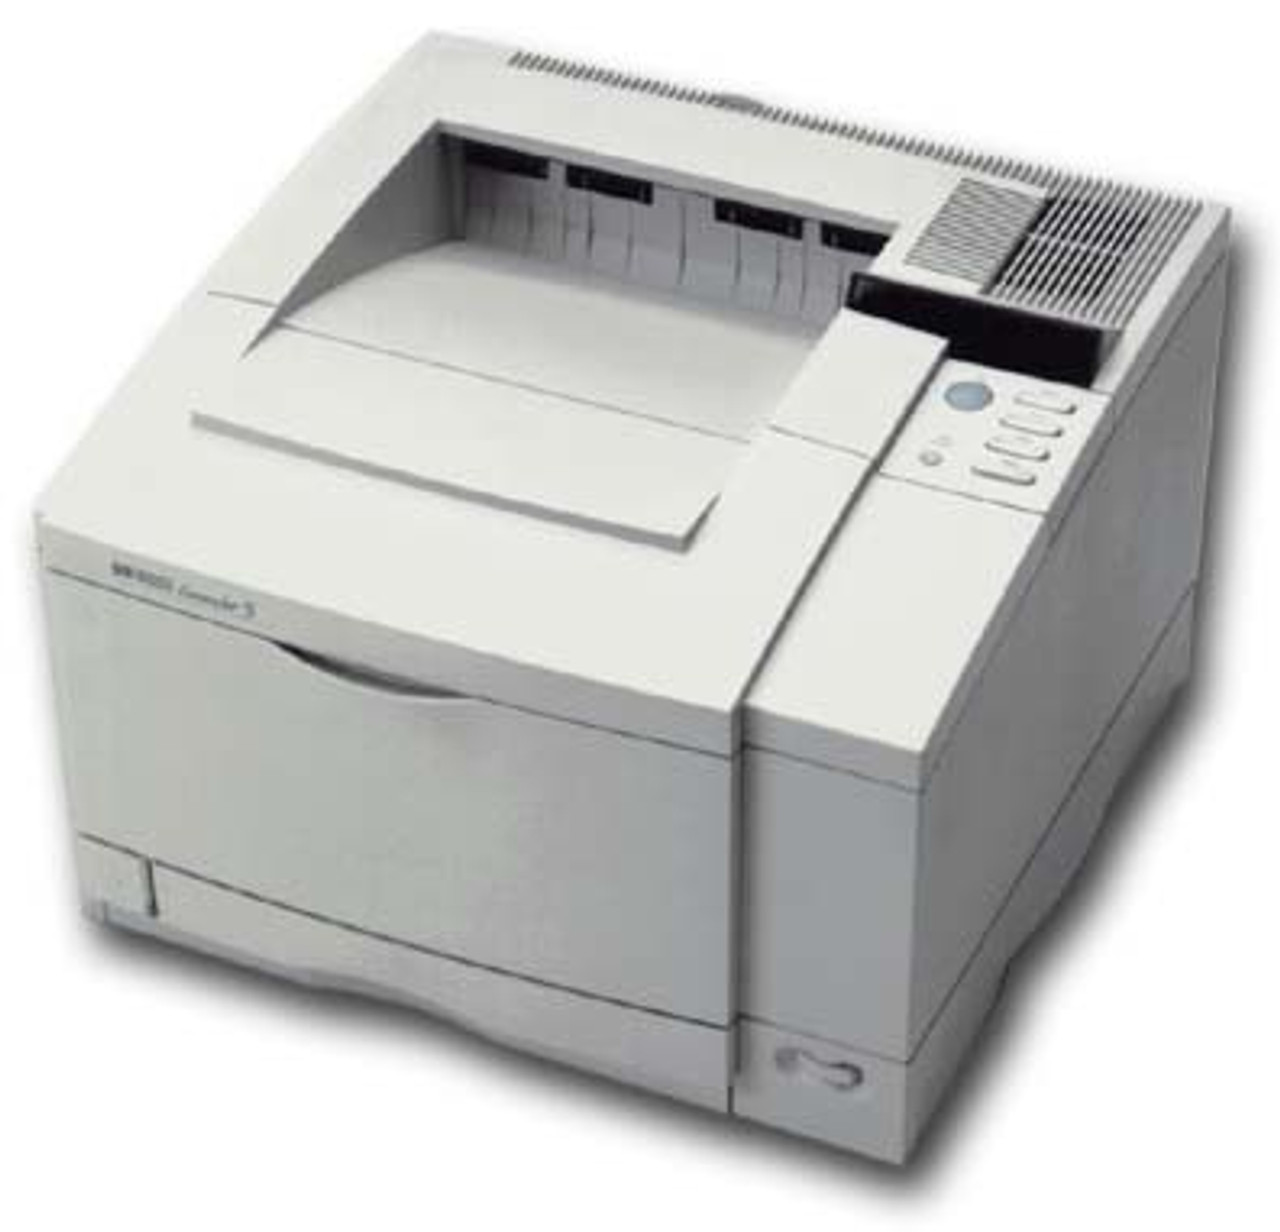 HP LaserJet 5 Laser Printer